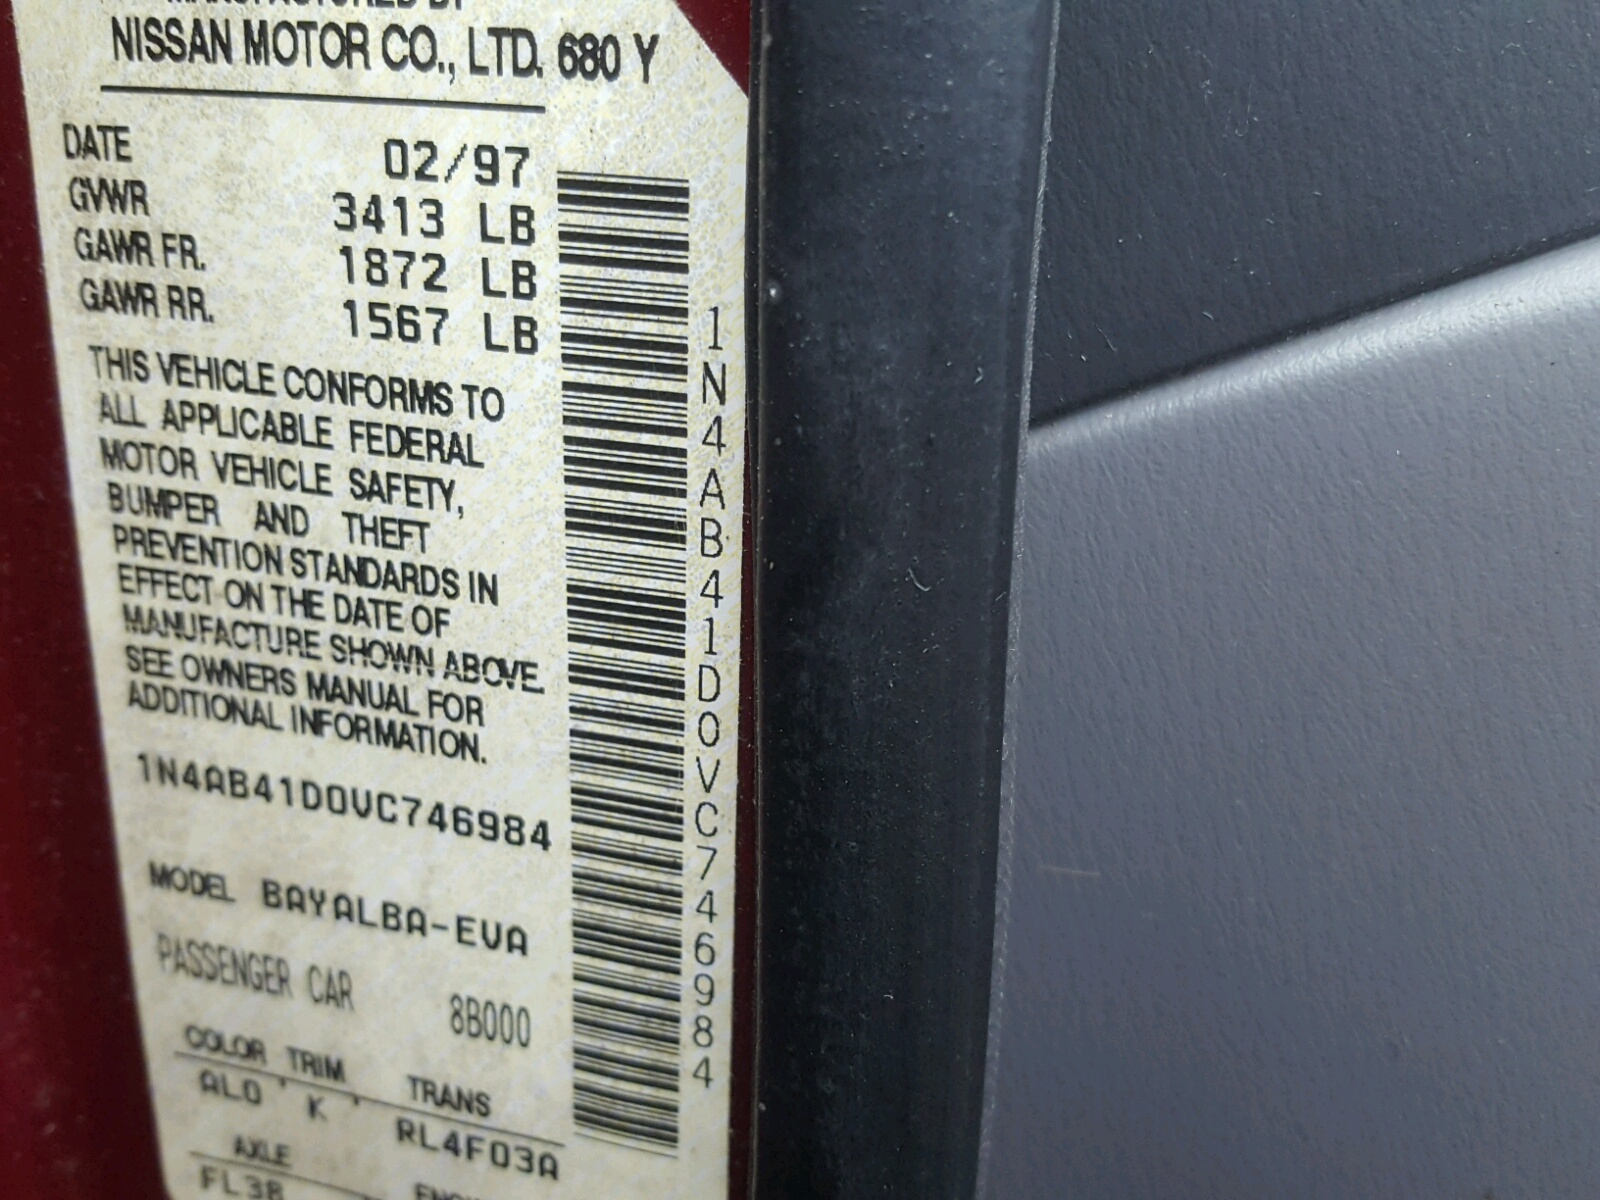 1n4ab41d0vc746984 1997 Red Nissan Sentra Xe On Sale In Pa Gxe Manual 16l